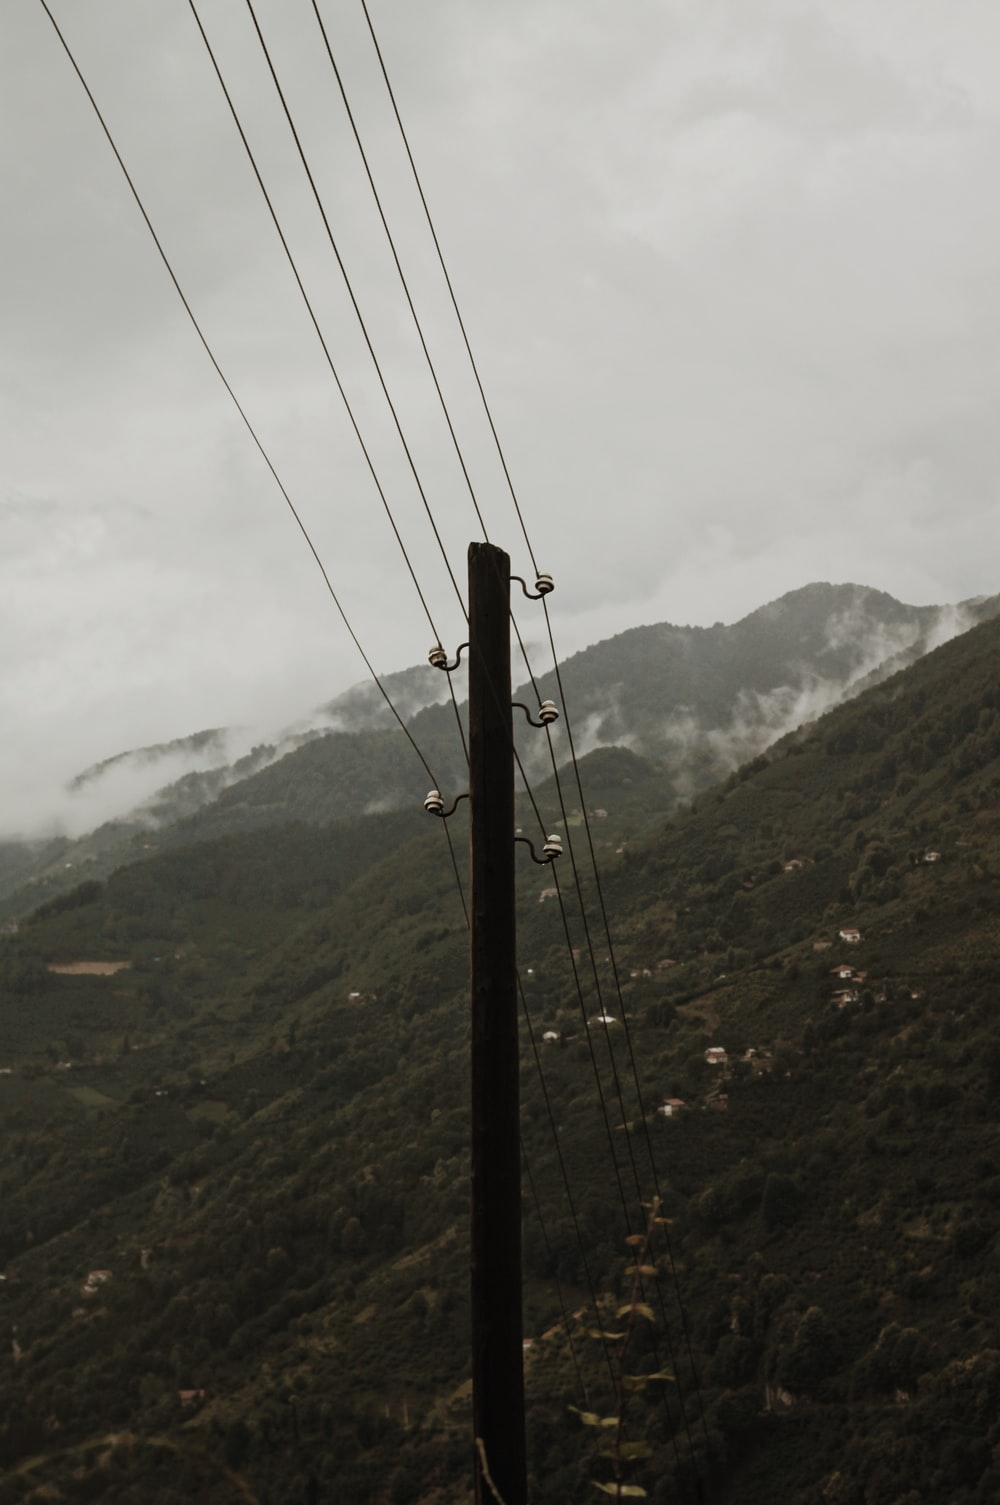 black cable wire over the mountain